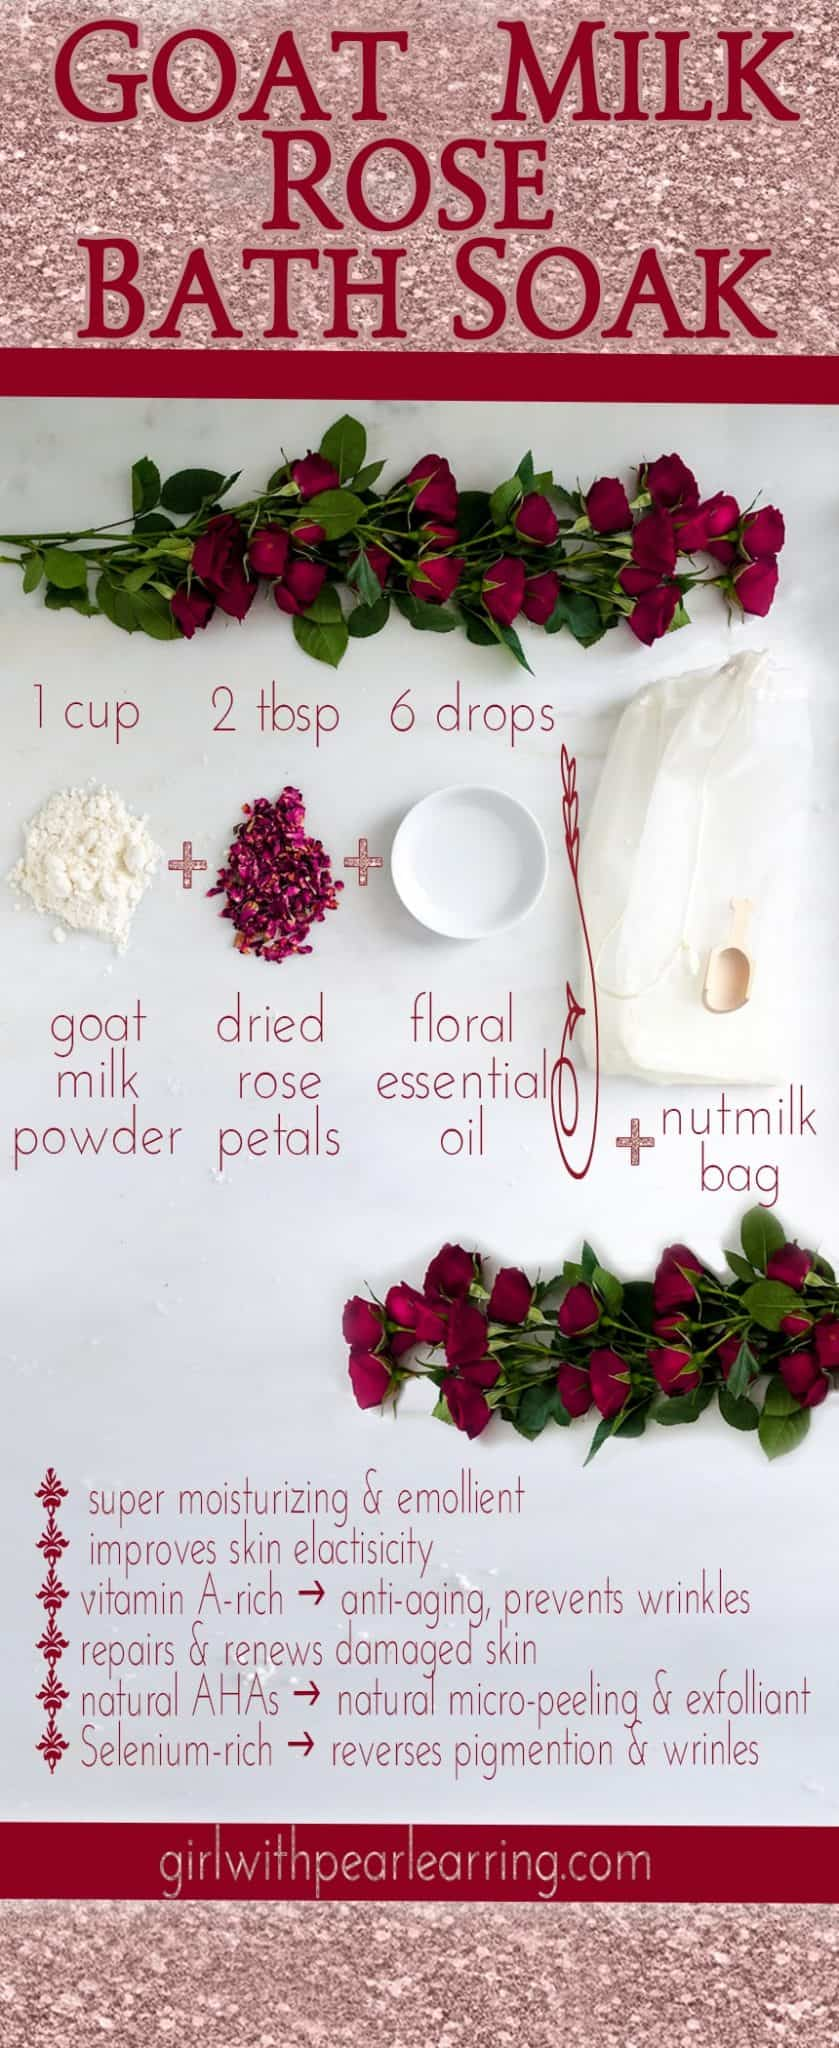 Goat milk bath soak